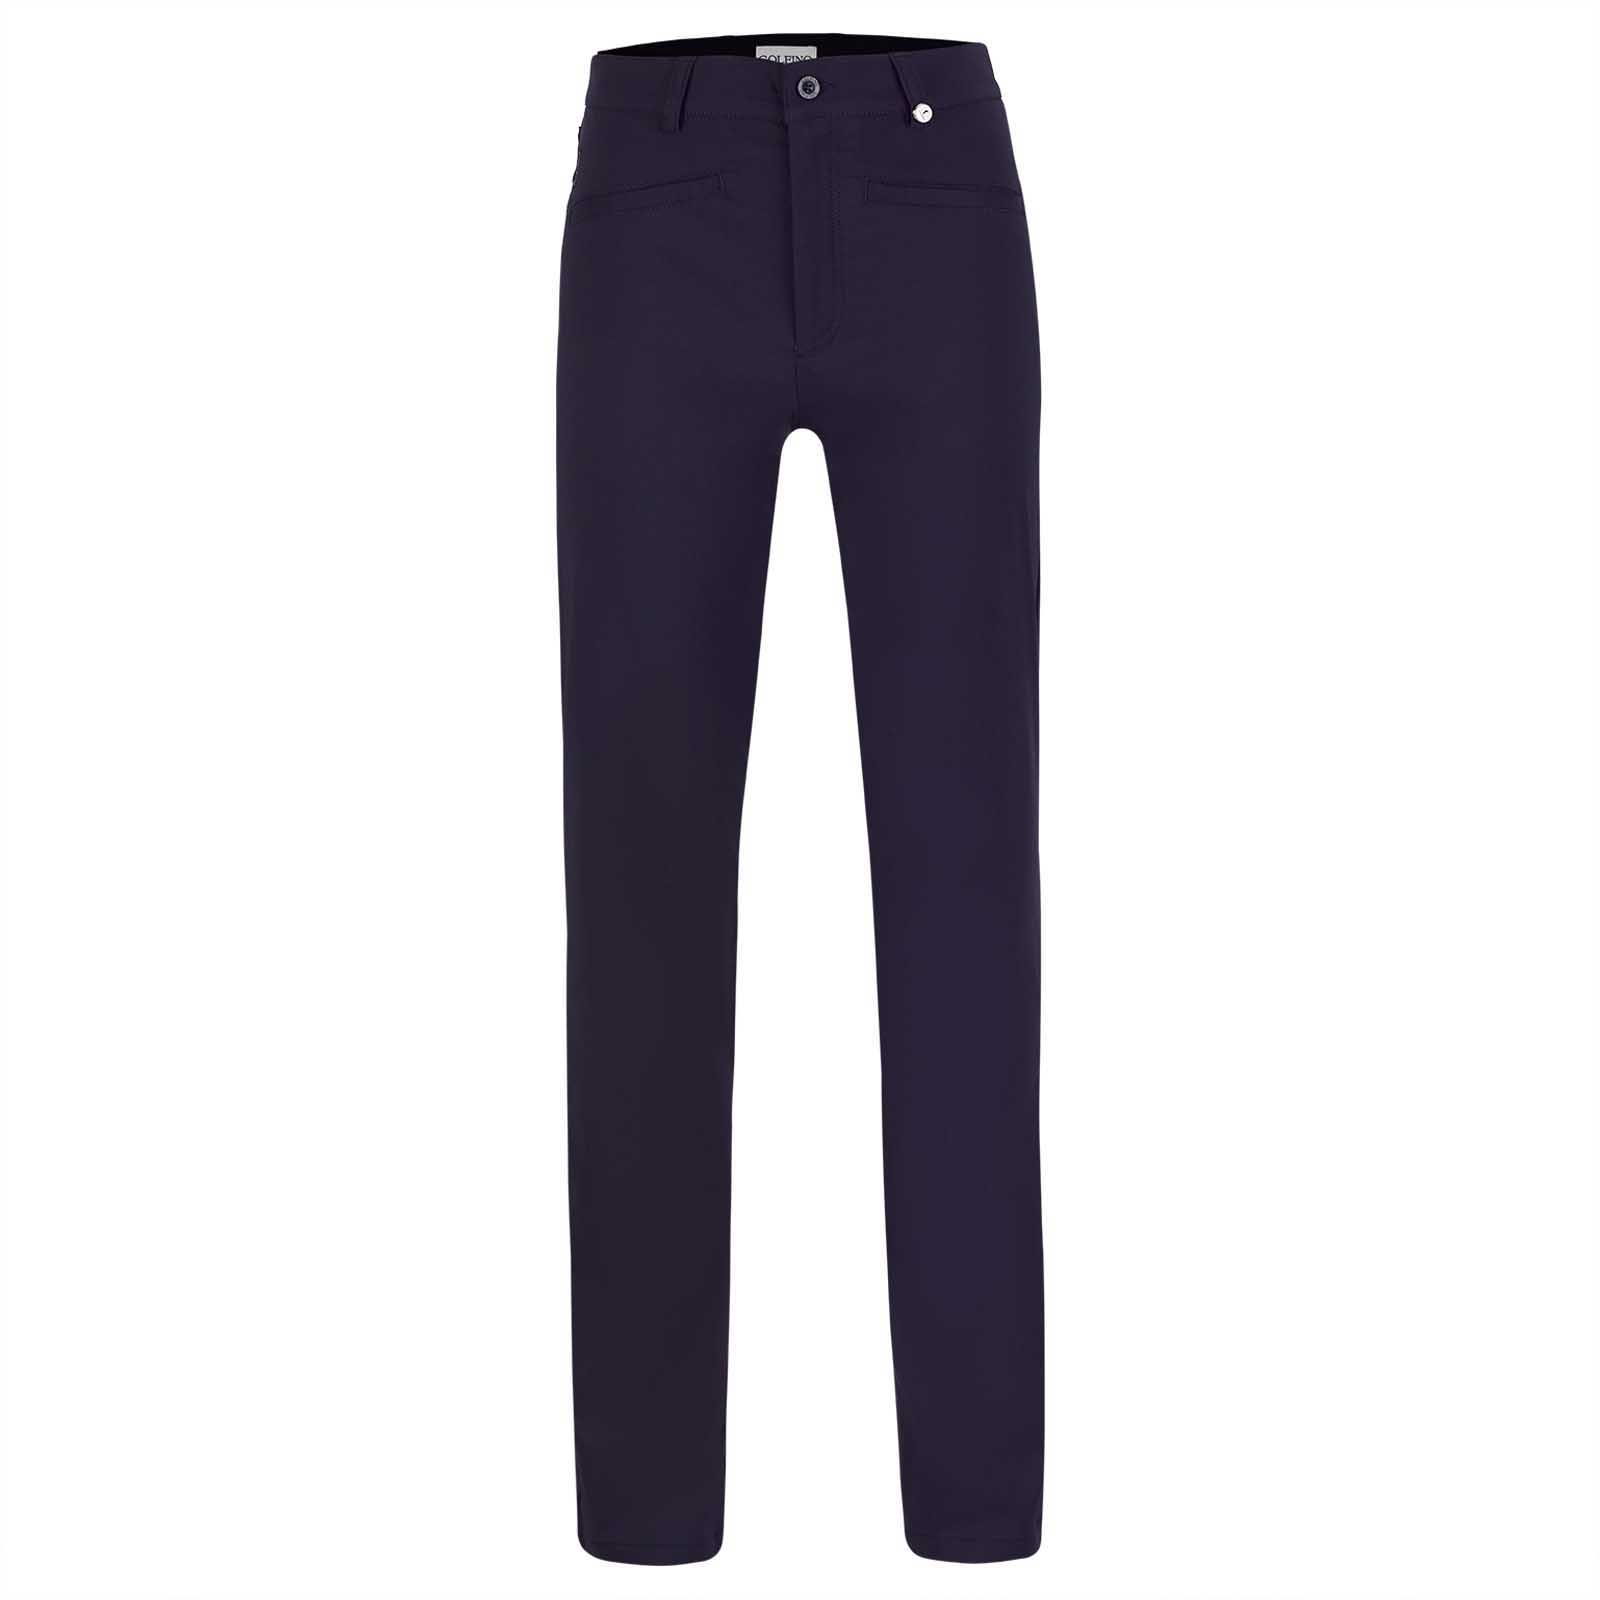 Ladies' techno stretch golf trousers made from exclusive functional material